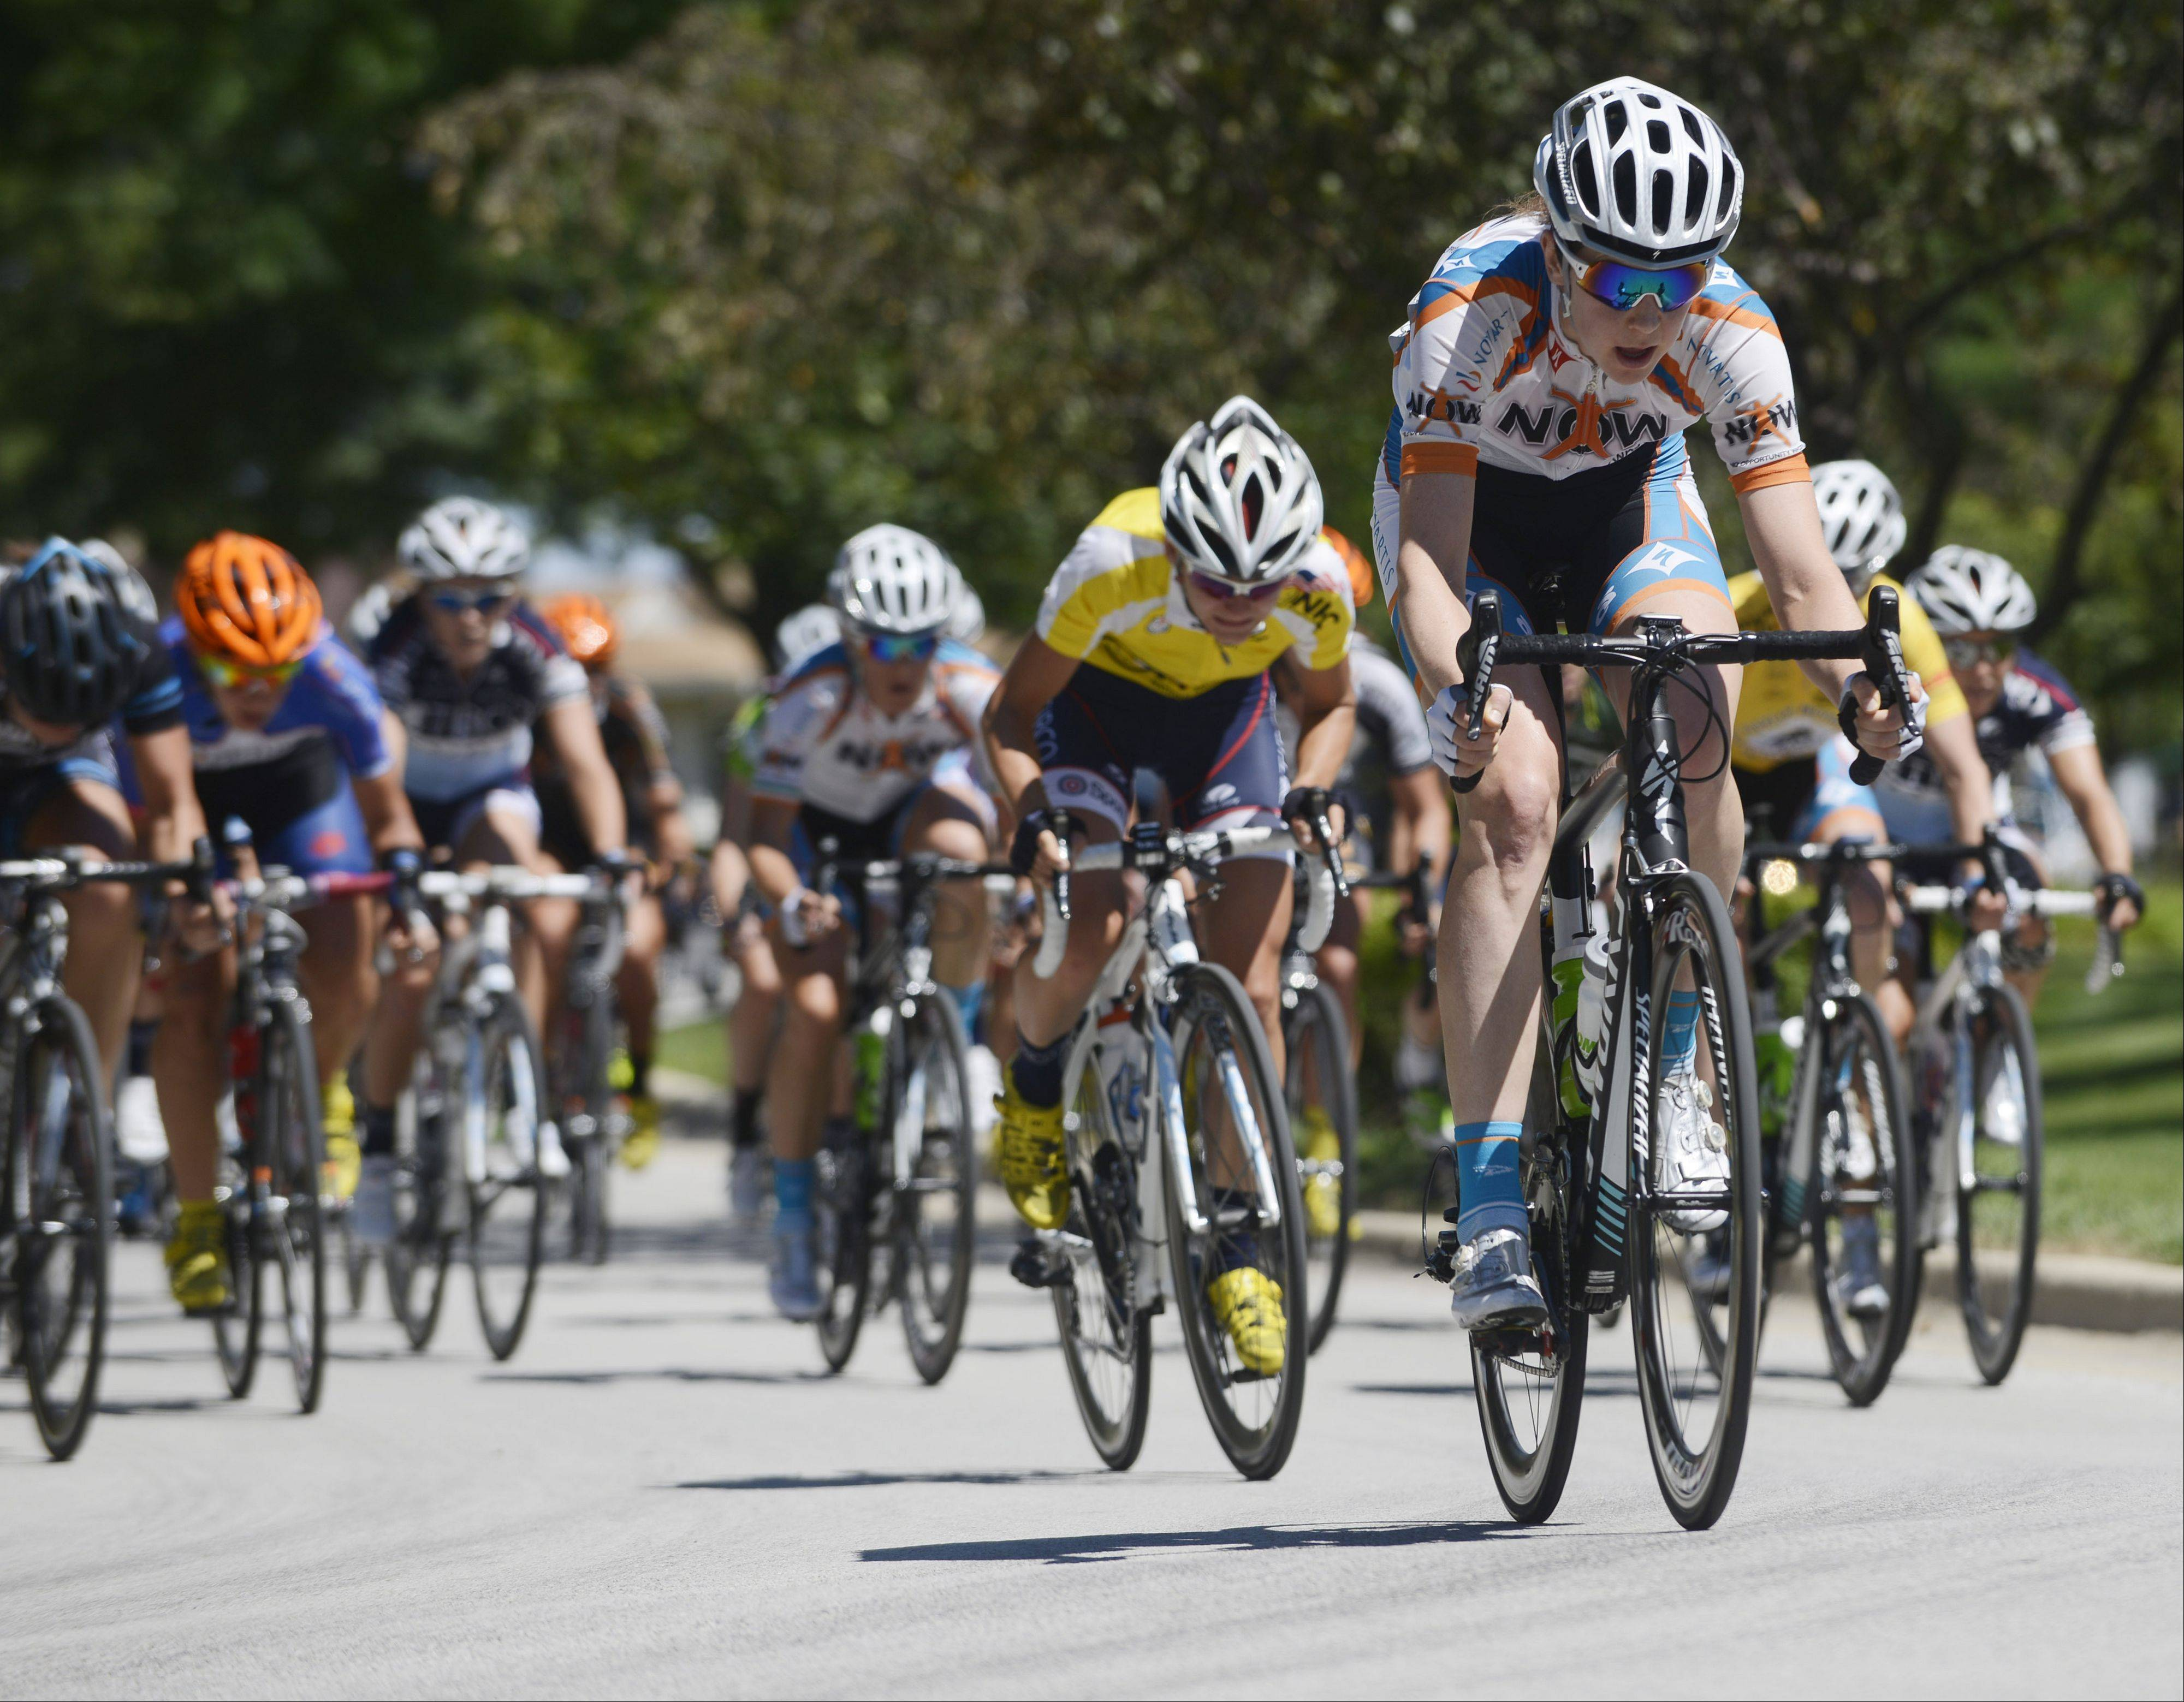 After eight years of bringing some of the world's top cyclists to the suburbs, the Tour of Elk Grove is no more, Elk Grove Village Mayor Craig Johnson announced Sunday. Johnson blamed the cancellation on a scheduling dispute with USA Cycling and the International Cycling Union.